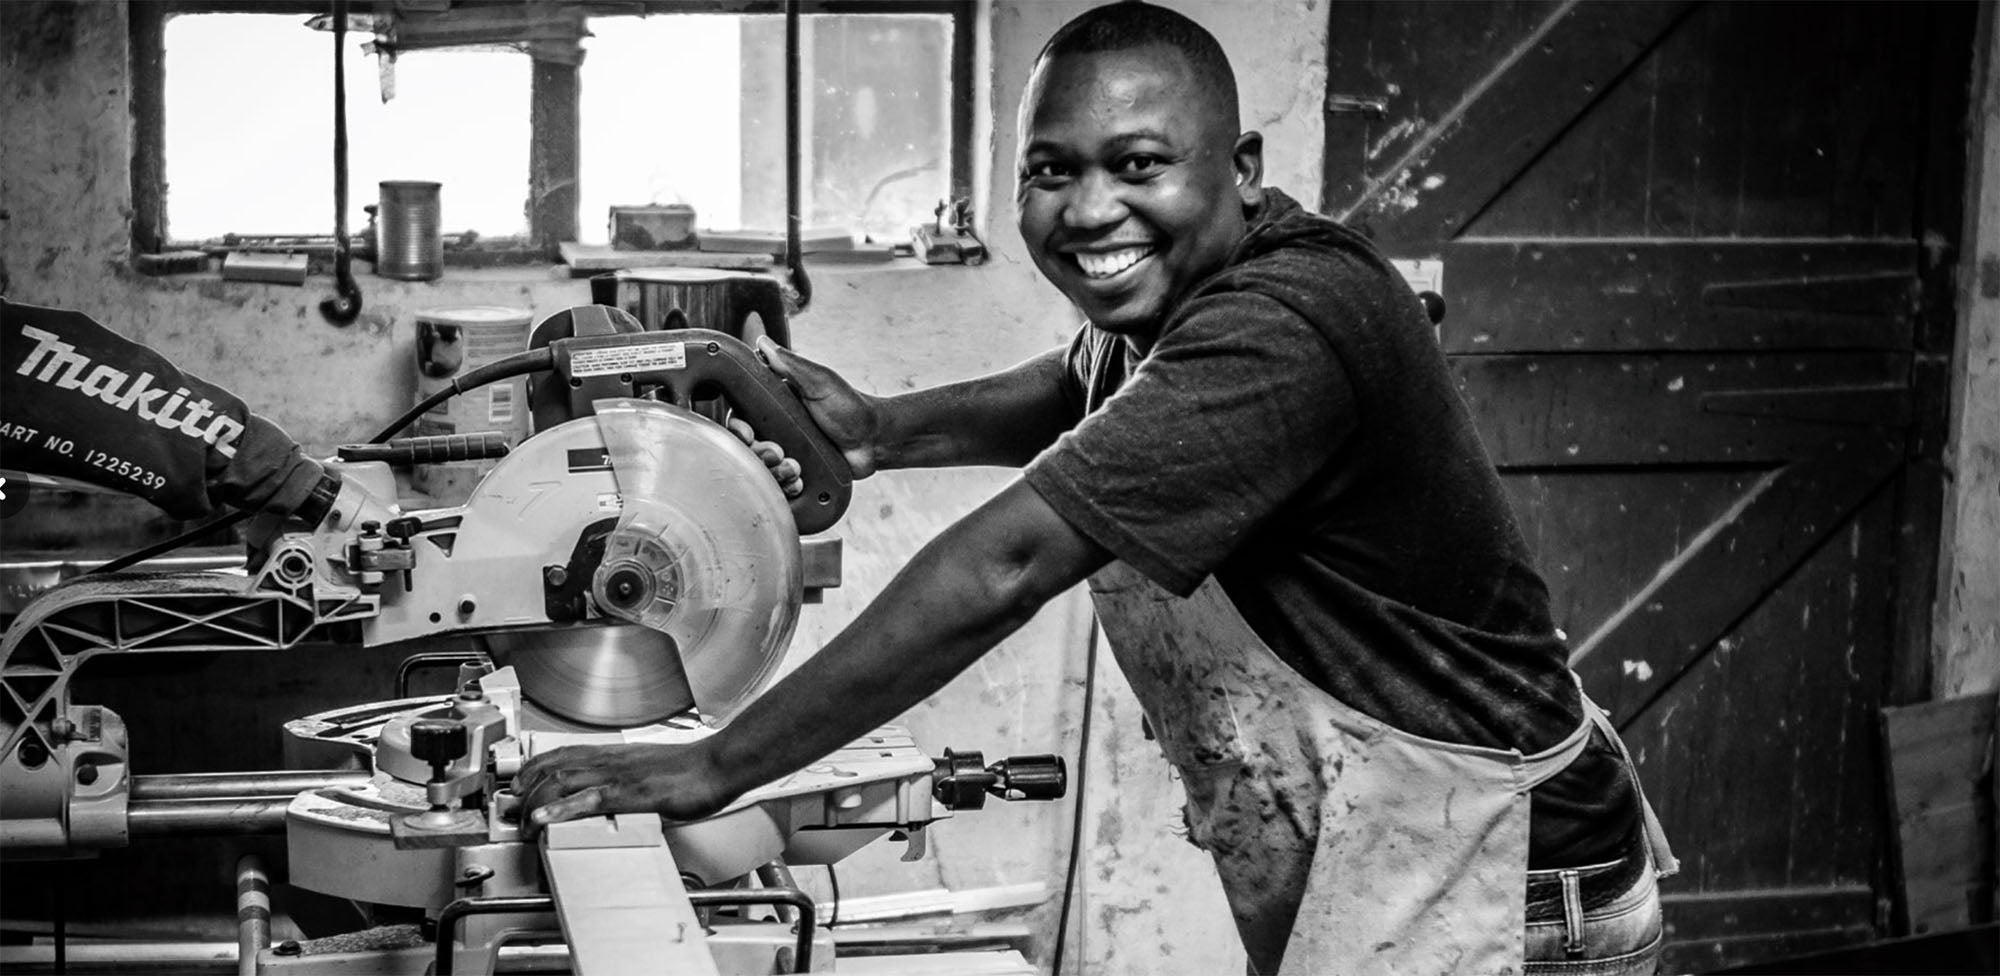 A member of the Coco Africa team of artisans at work in the wood workshop, smiling to camera. Coco Africa wooden home décor products are available at Sarza home goods and furniture store in Rye New York